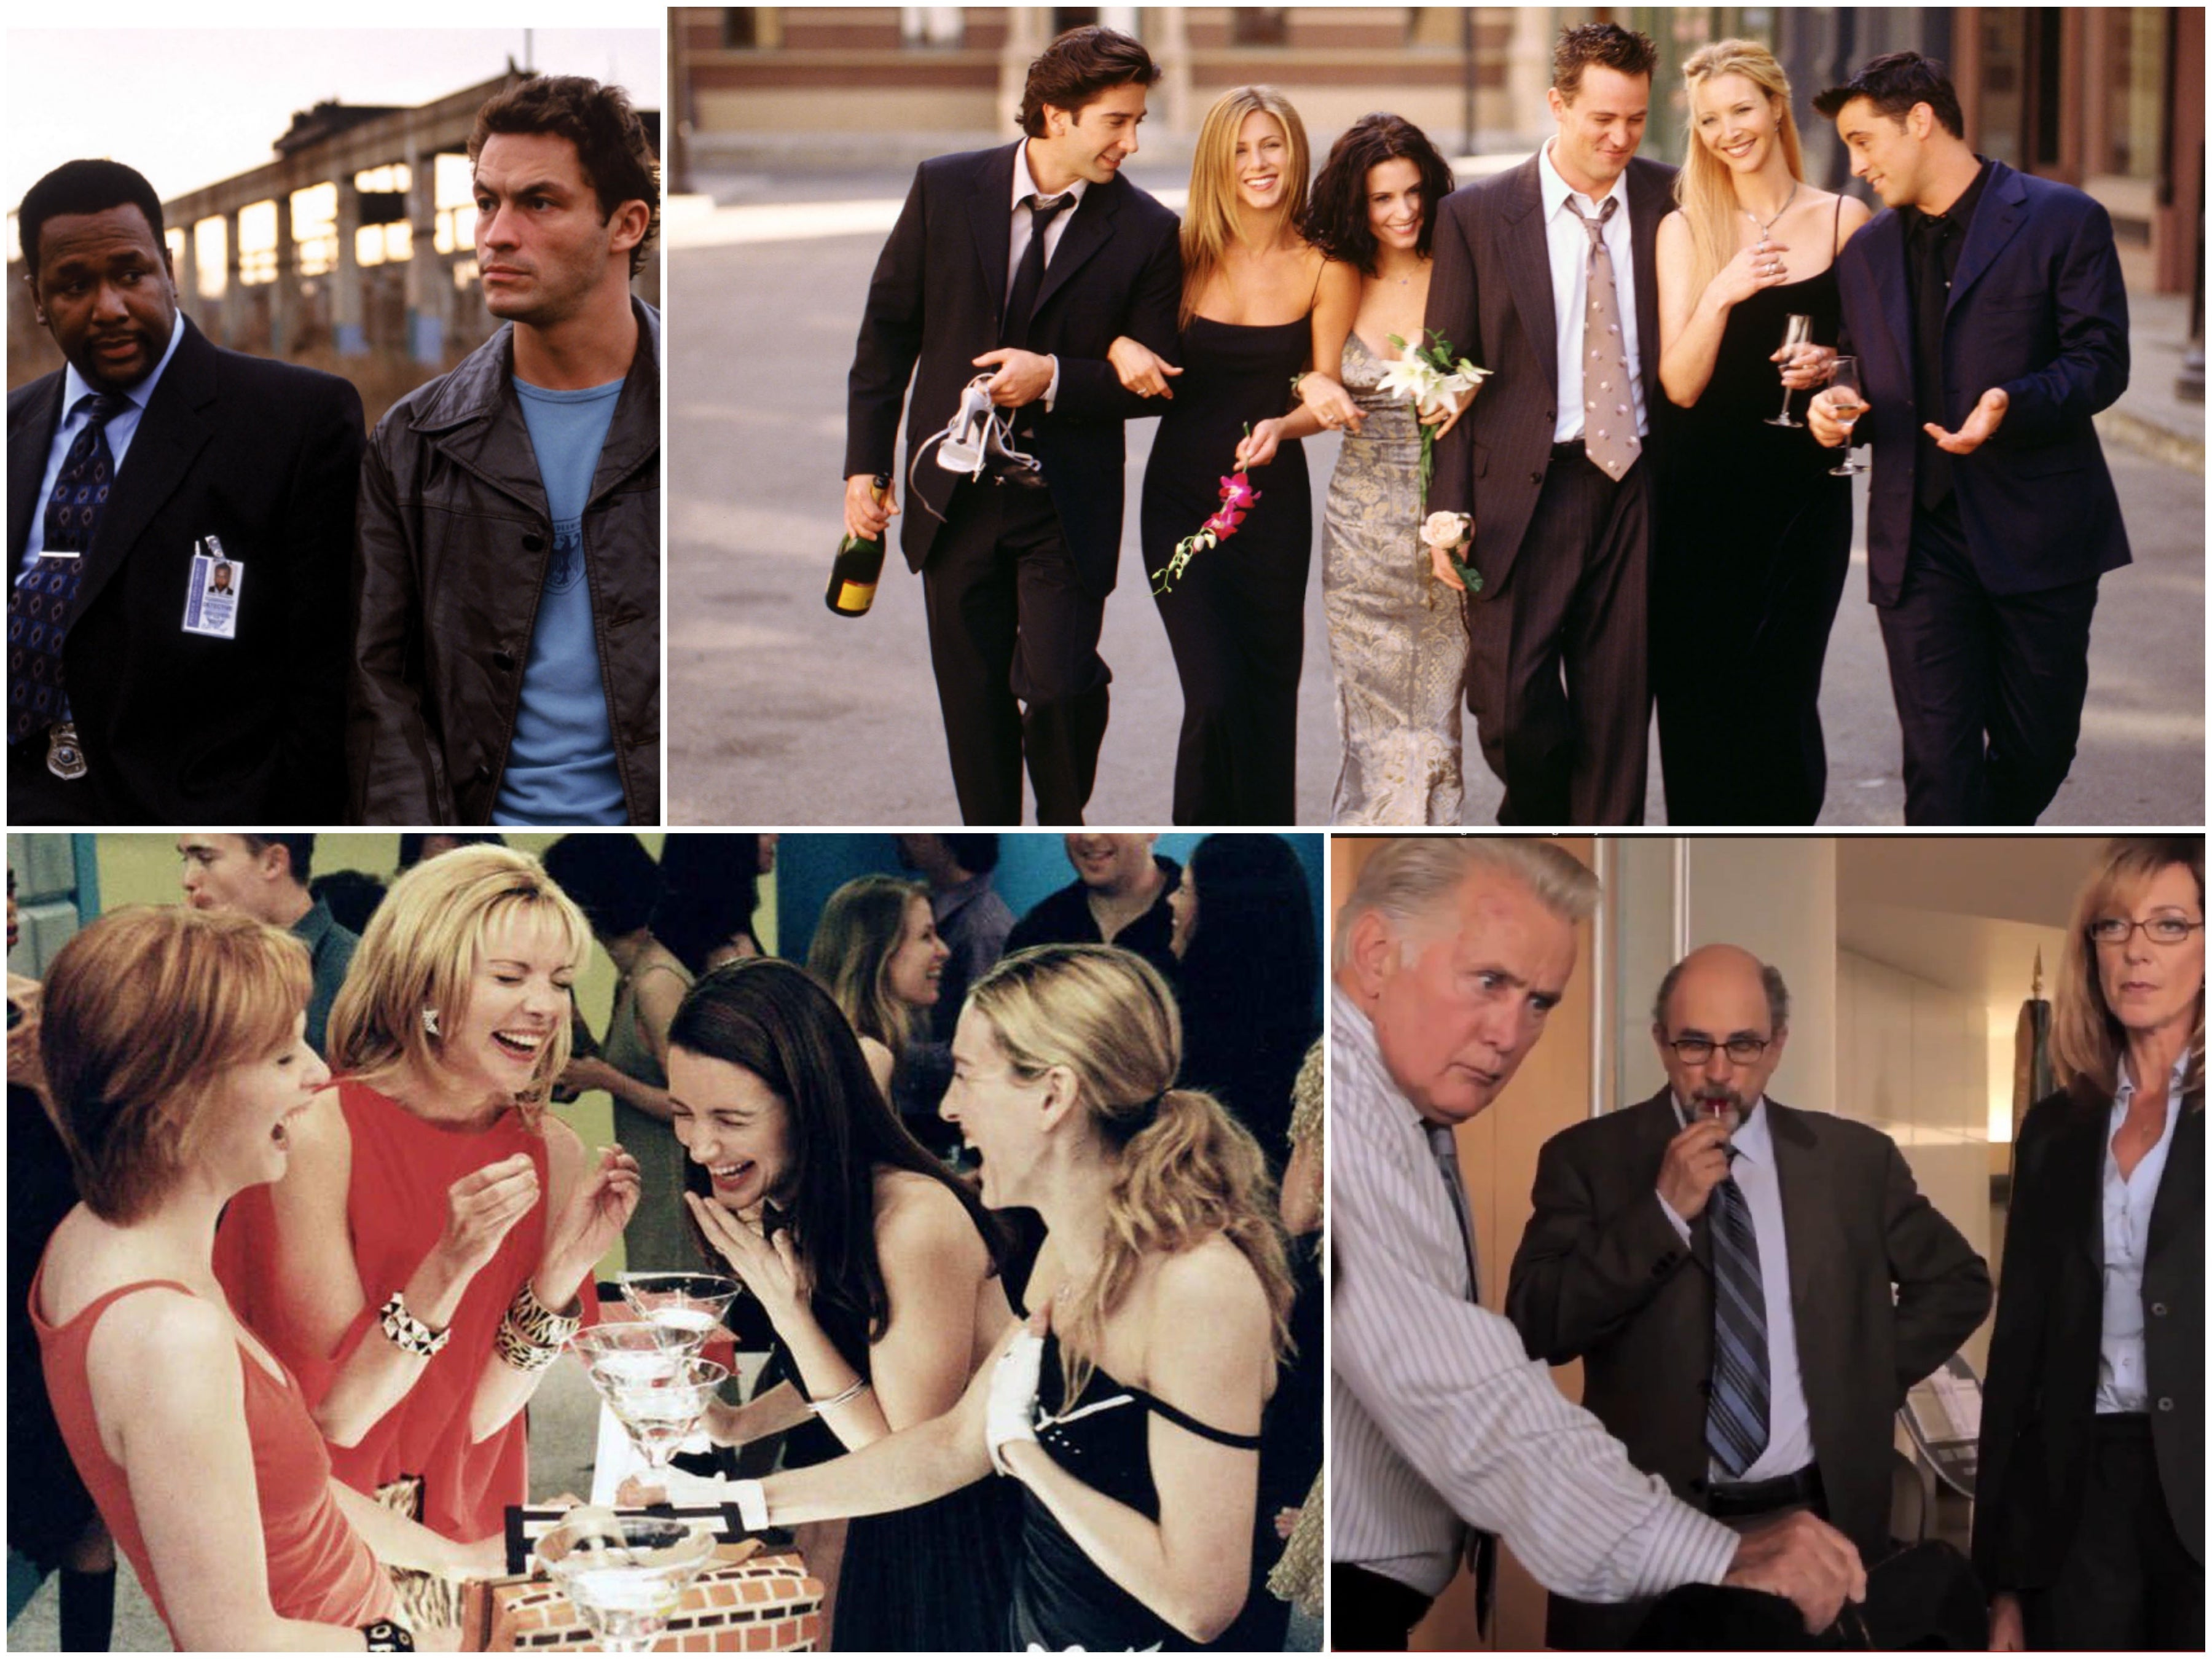 Scenes from Friends, The Wire, Sex and the City and West Wing